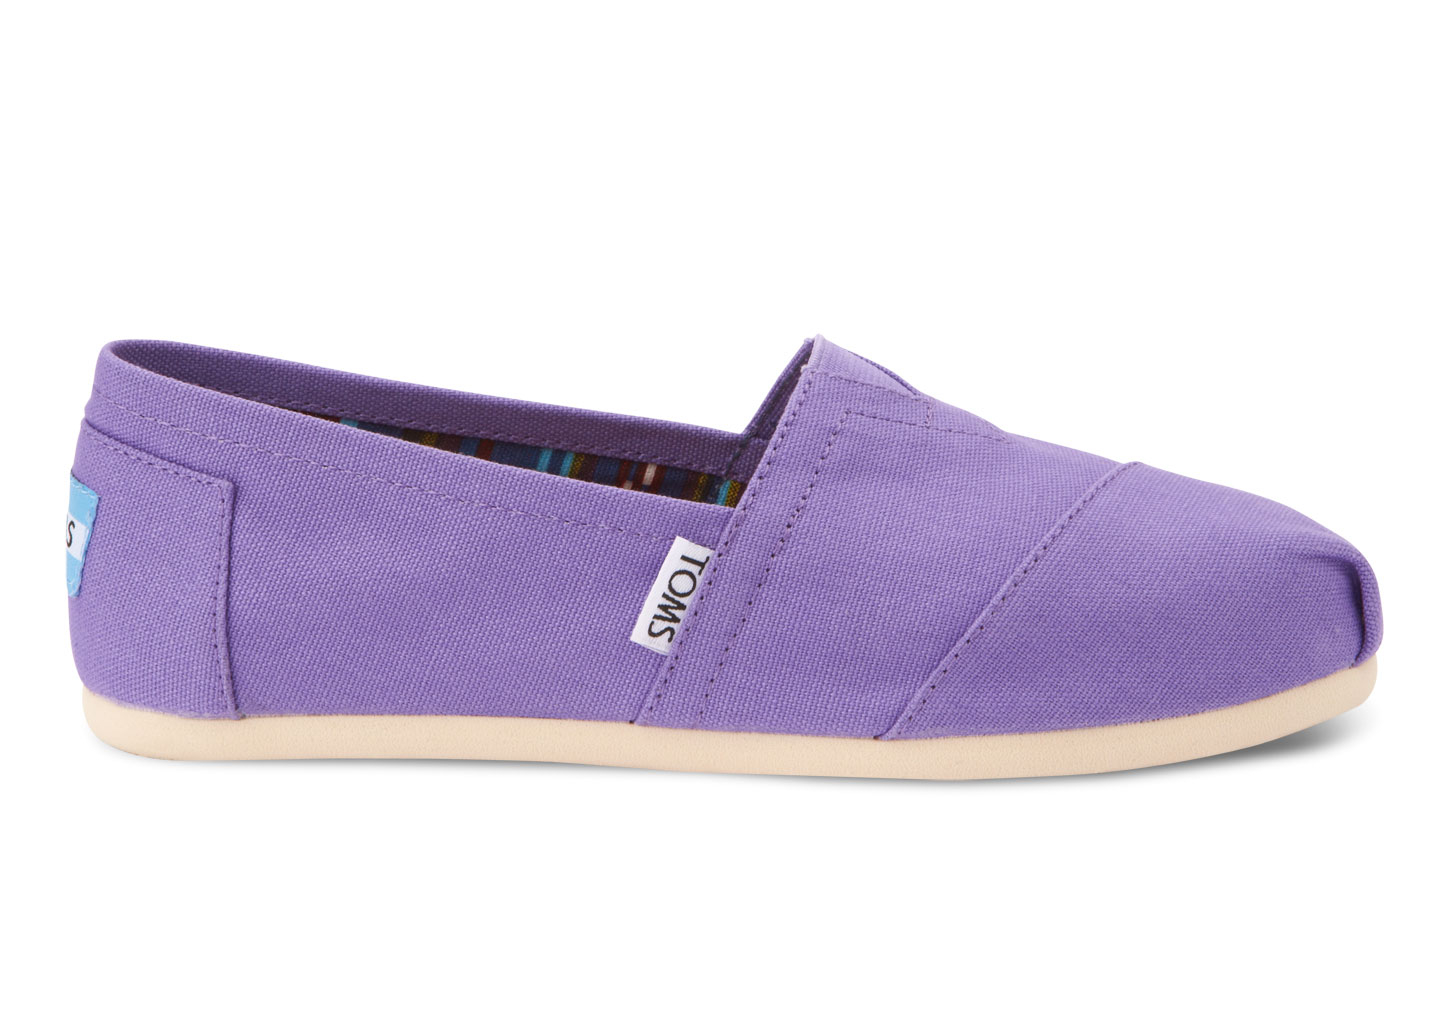 d88672ee6a6 TOMS Womens Canvas Classics in Purple - Lyst